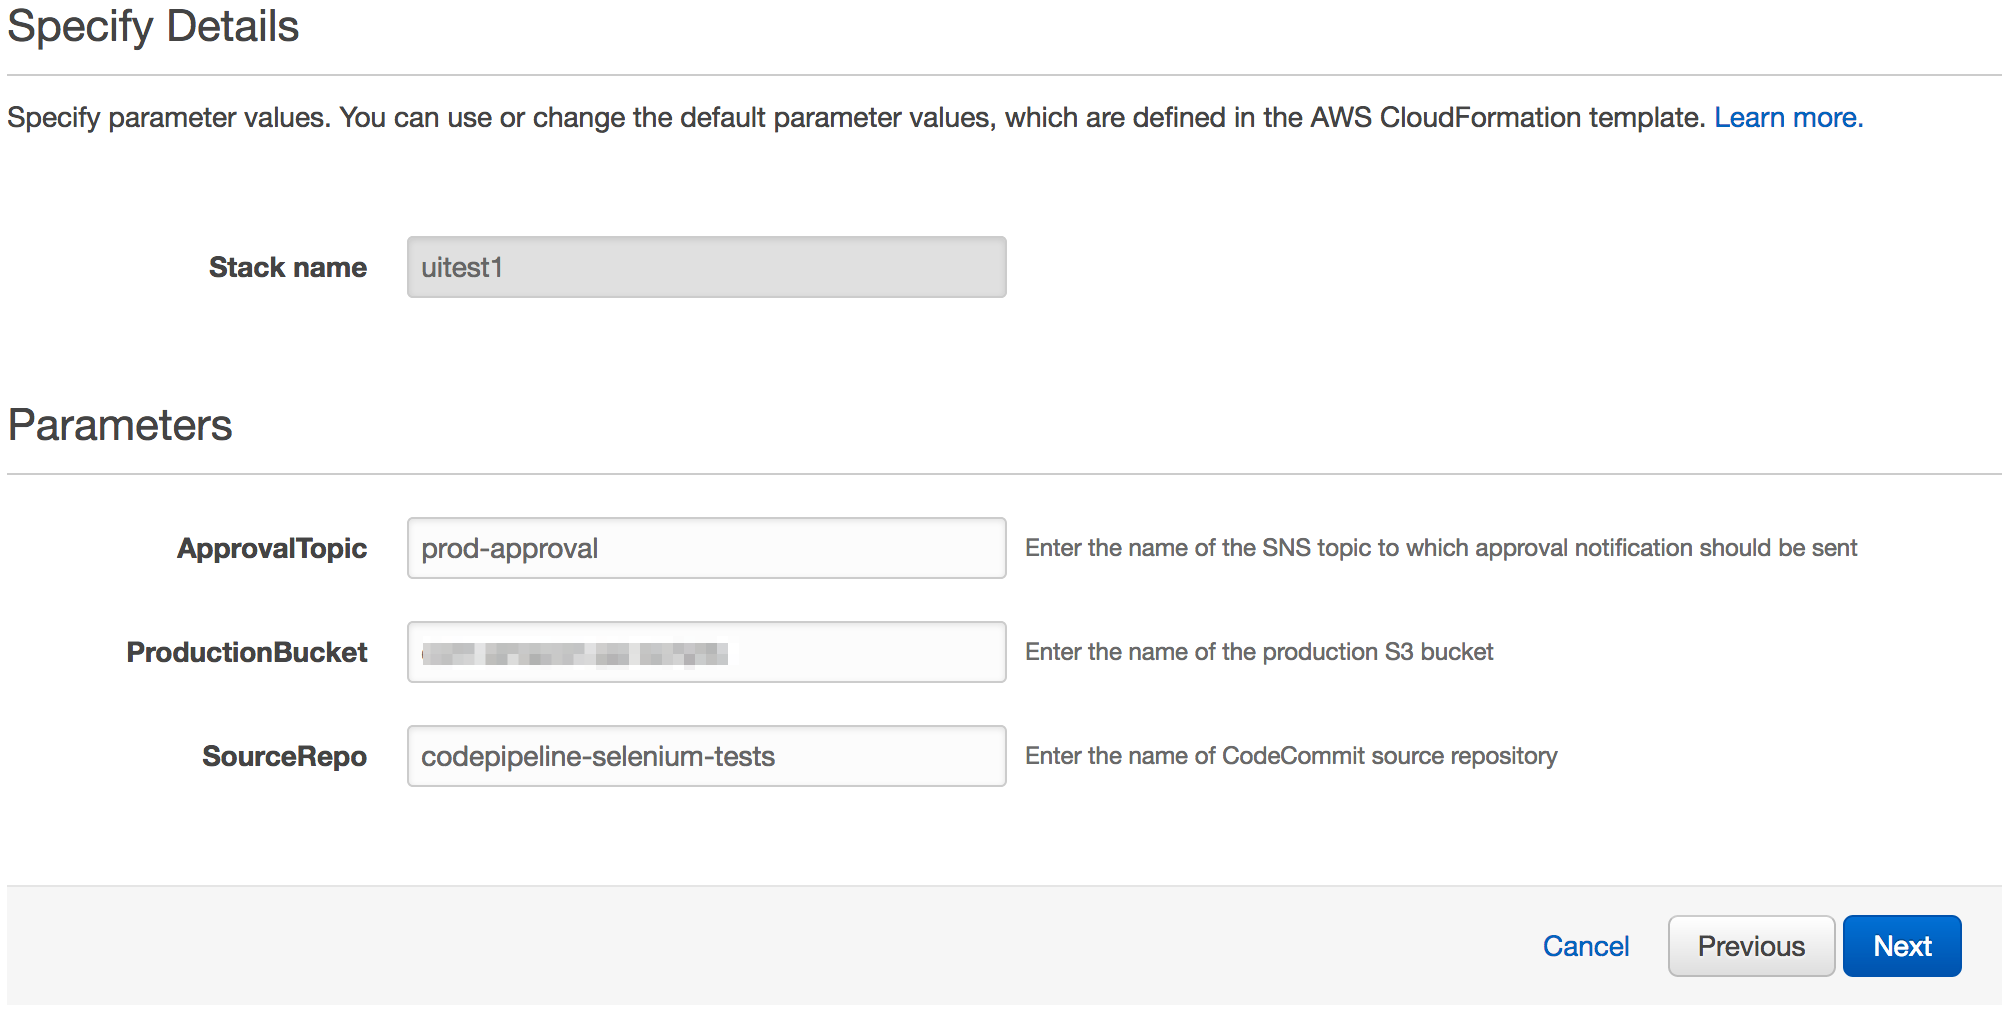 Using AWS CodePipeline, AWS CodeBuild, and AWS Lambda for